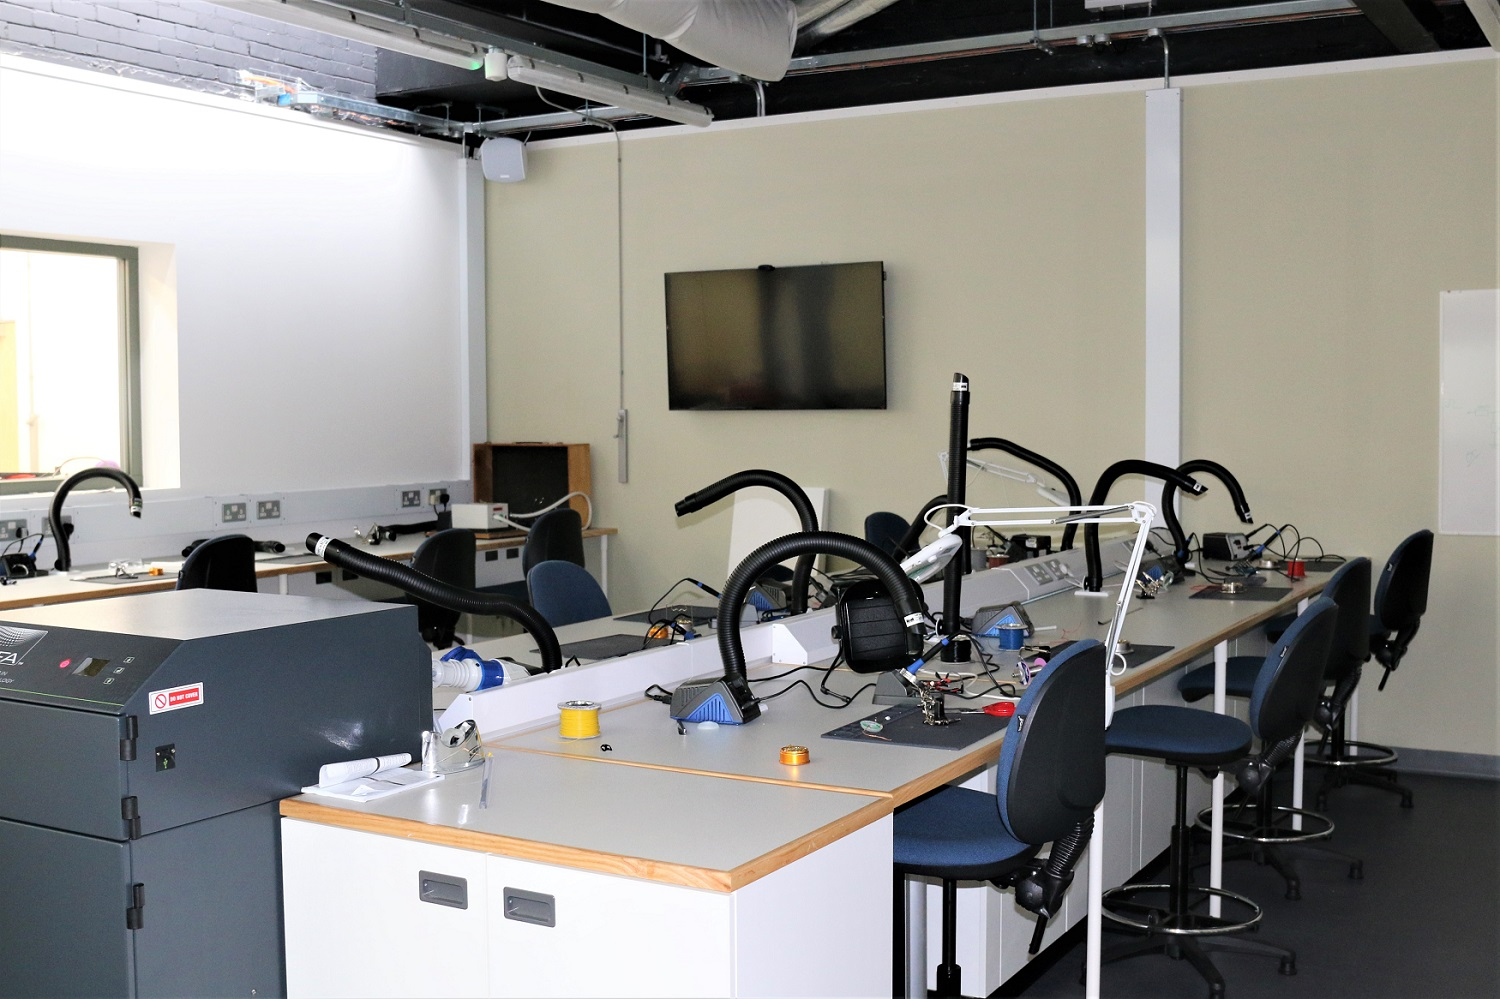 Conversion of rooms into new electronics lab